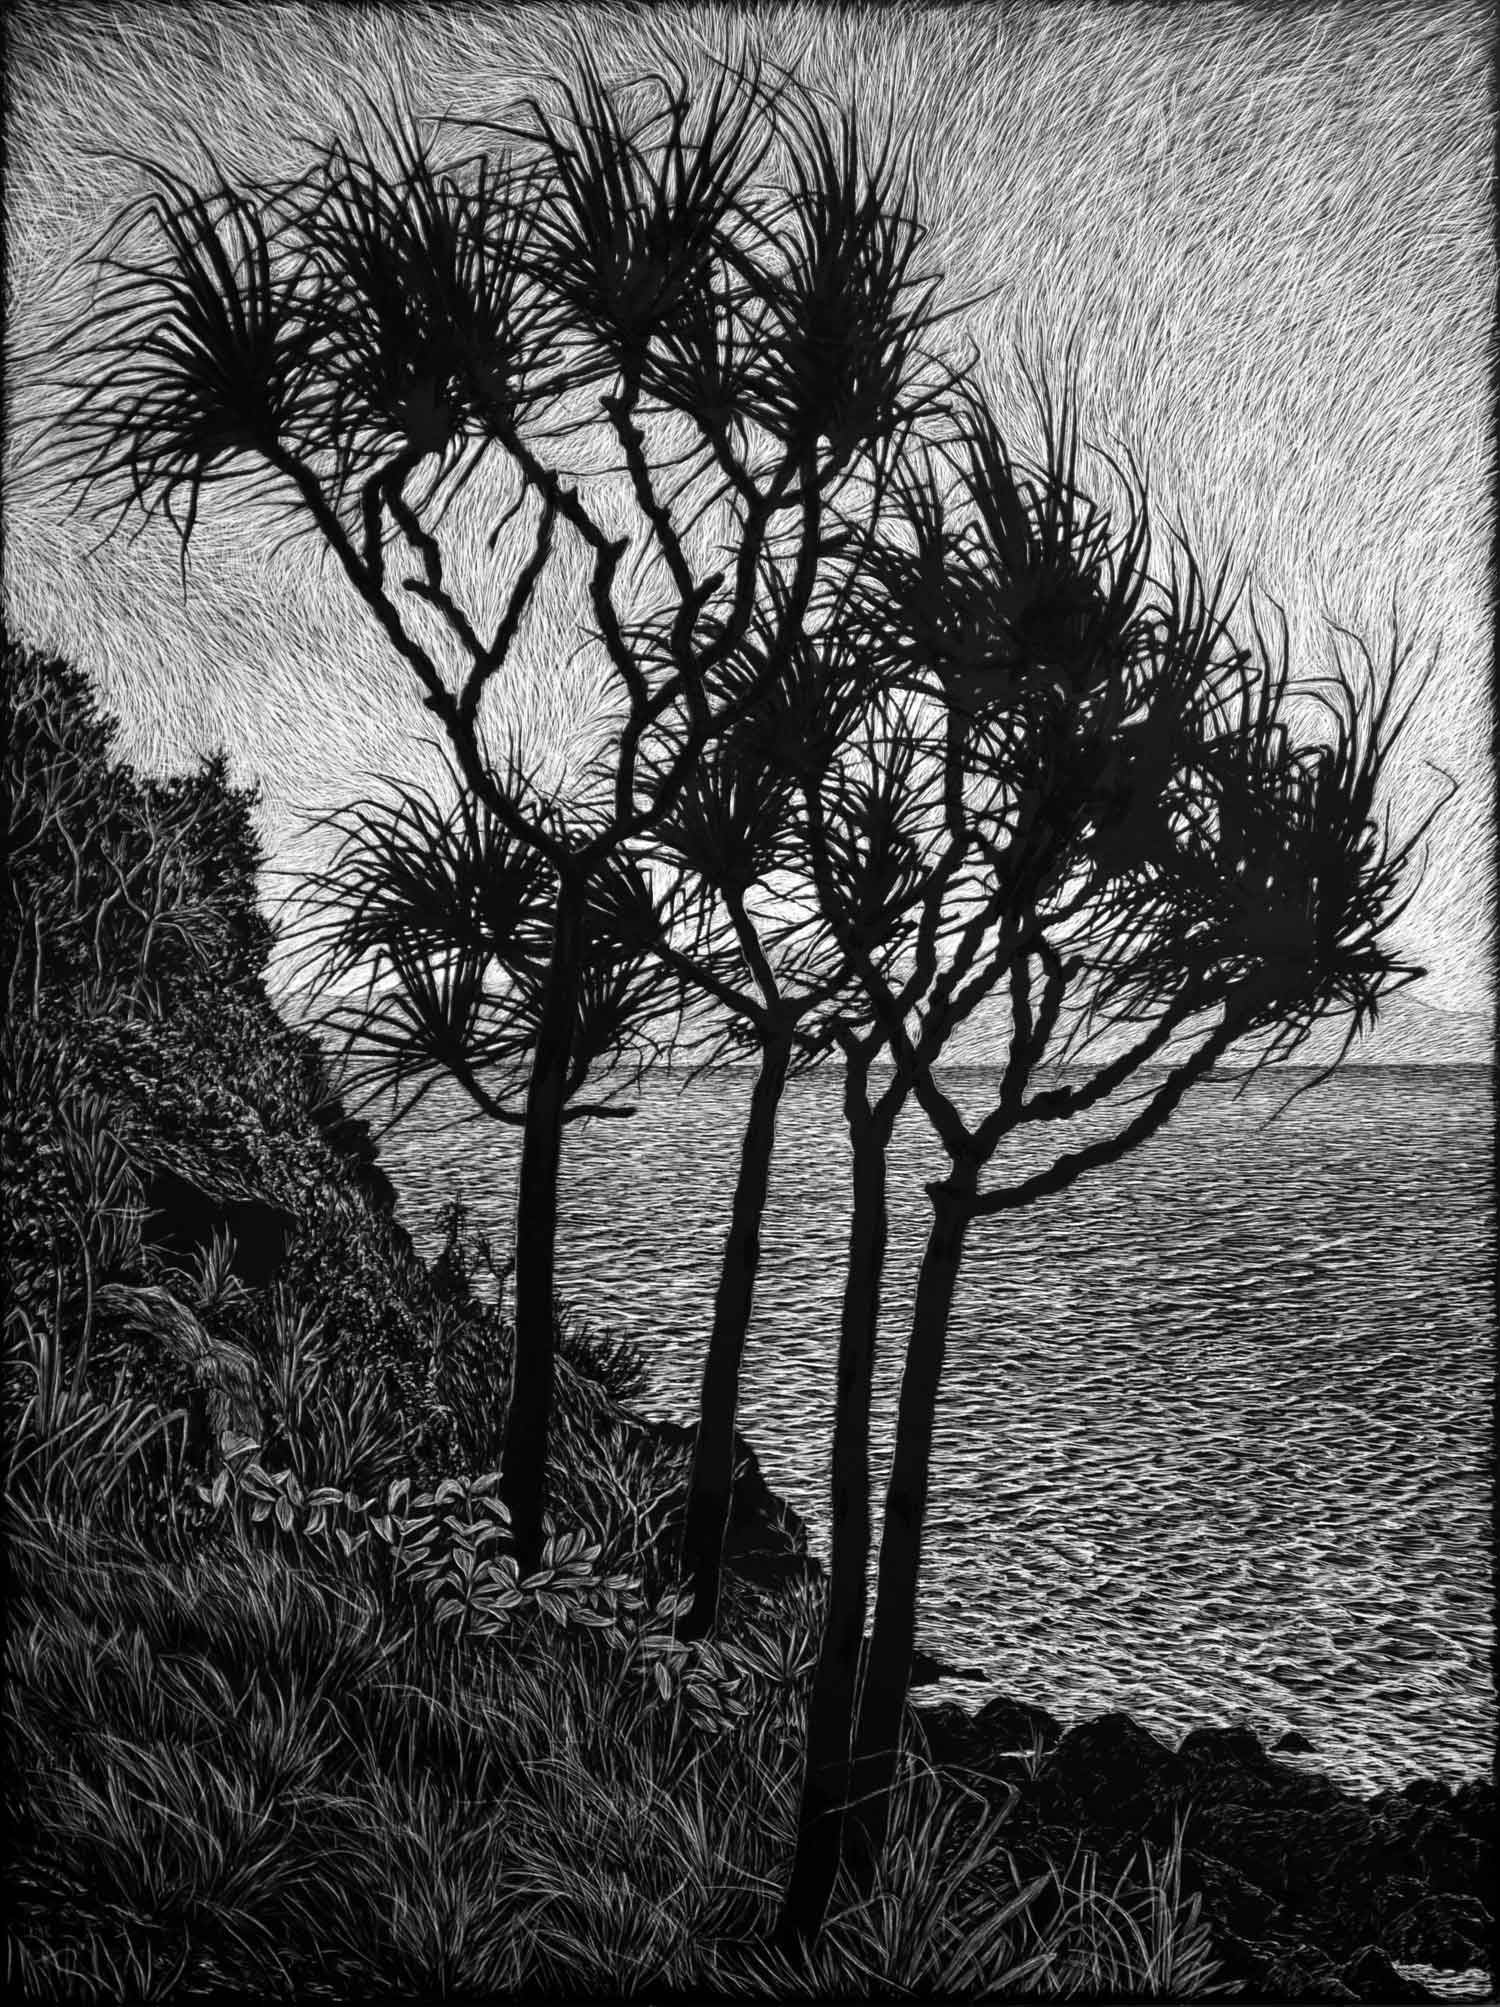 HEADLAND WITH PANDANUS  61 X 45.5 CM,  EDITION OF 50  PIGMENT ON COTTON RAG PAPER  $1,100 also available 75 x 56 cm $1,350